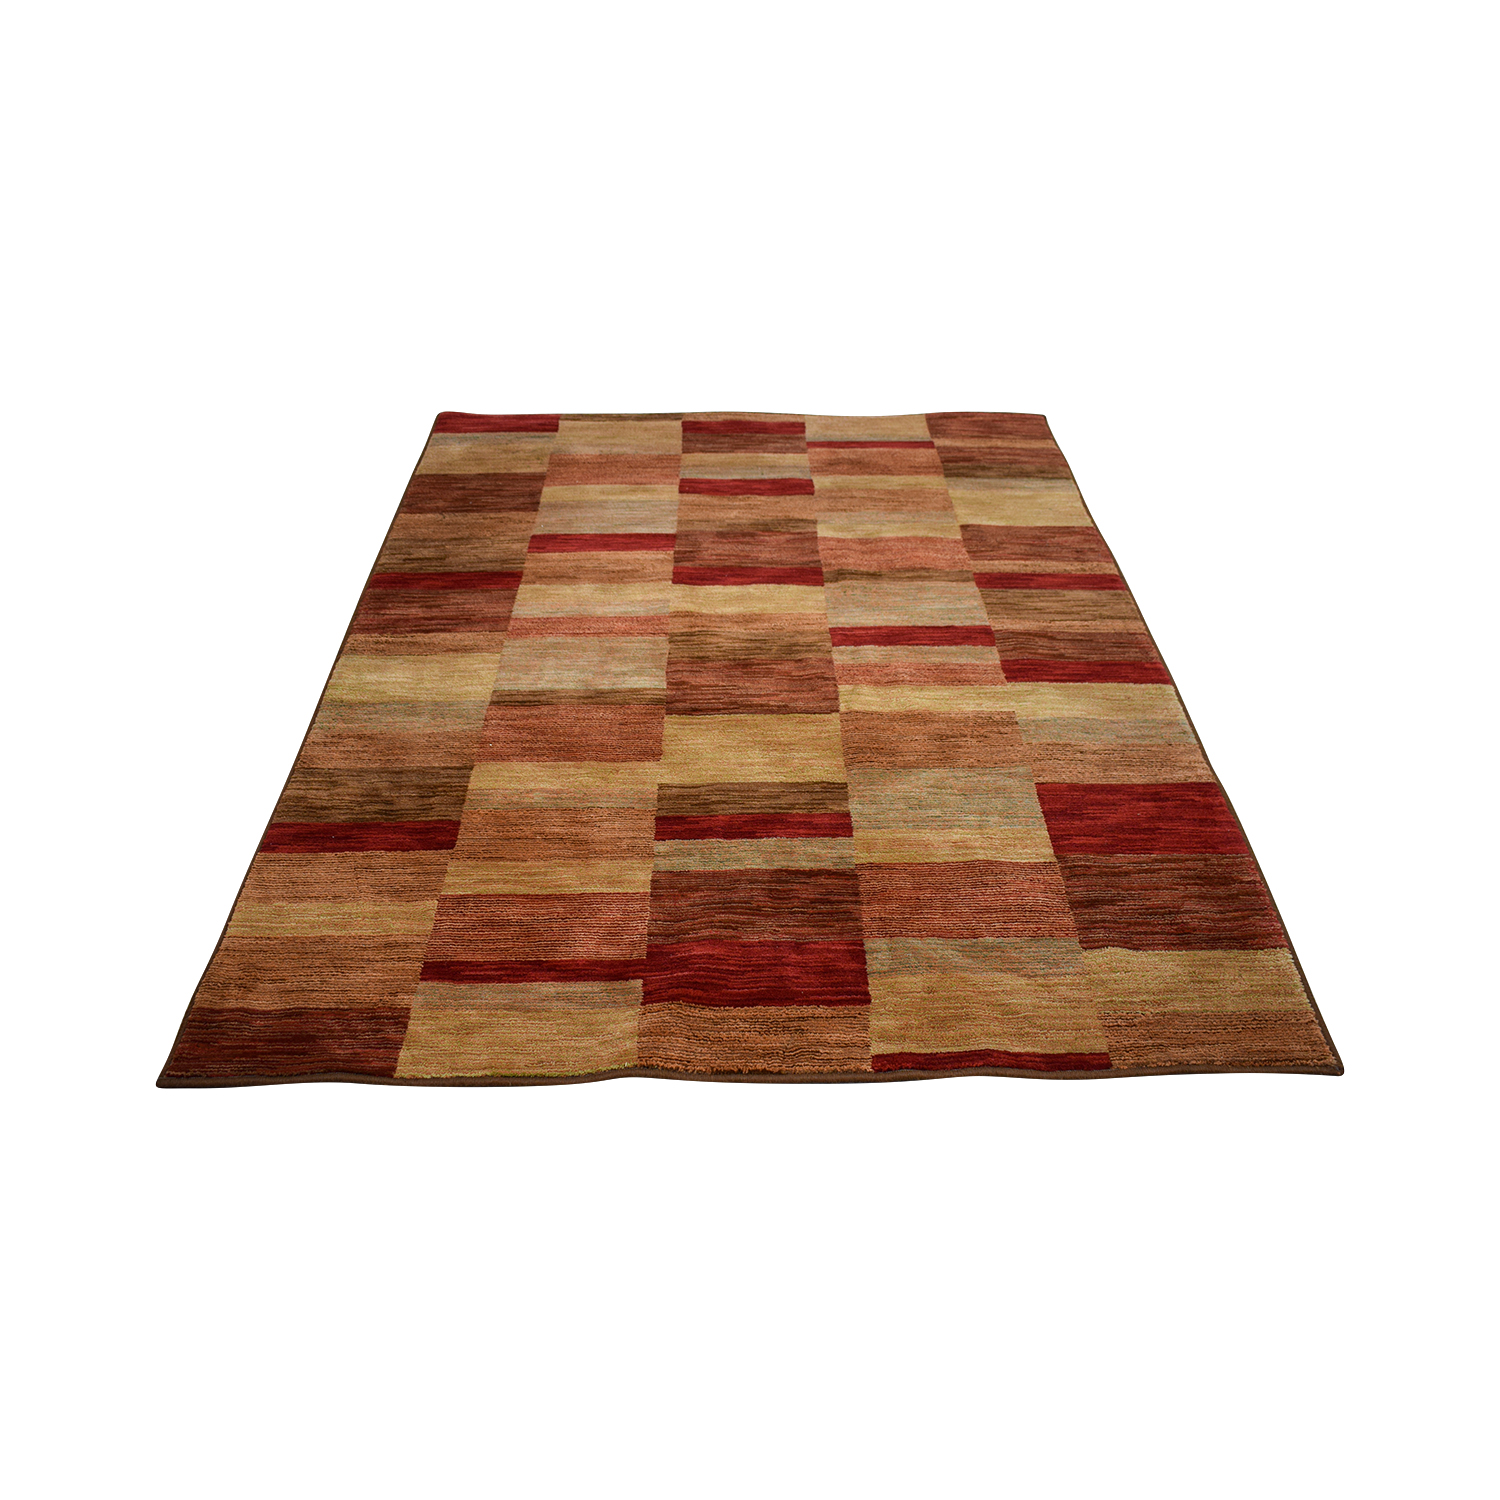 buy Raymour & Flanigan Shaw Living Burgundy Tan and Brown Rug Raymour & Flanigan Rugs